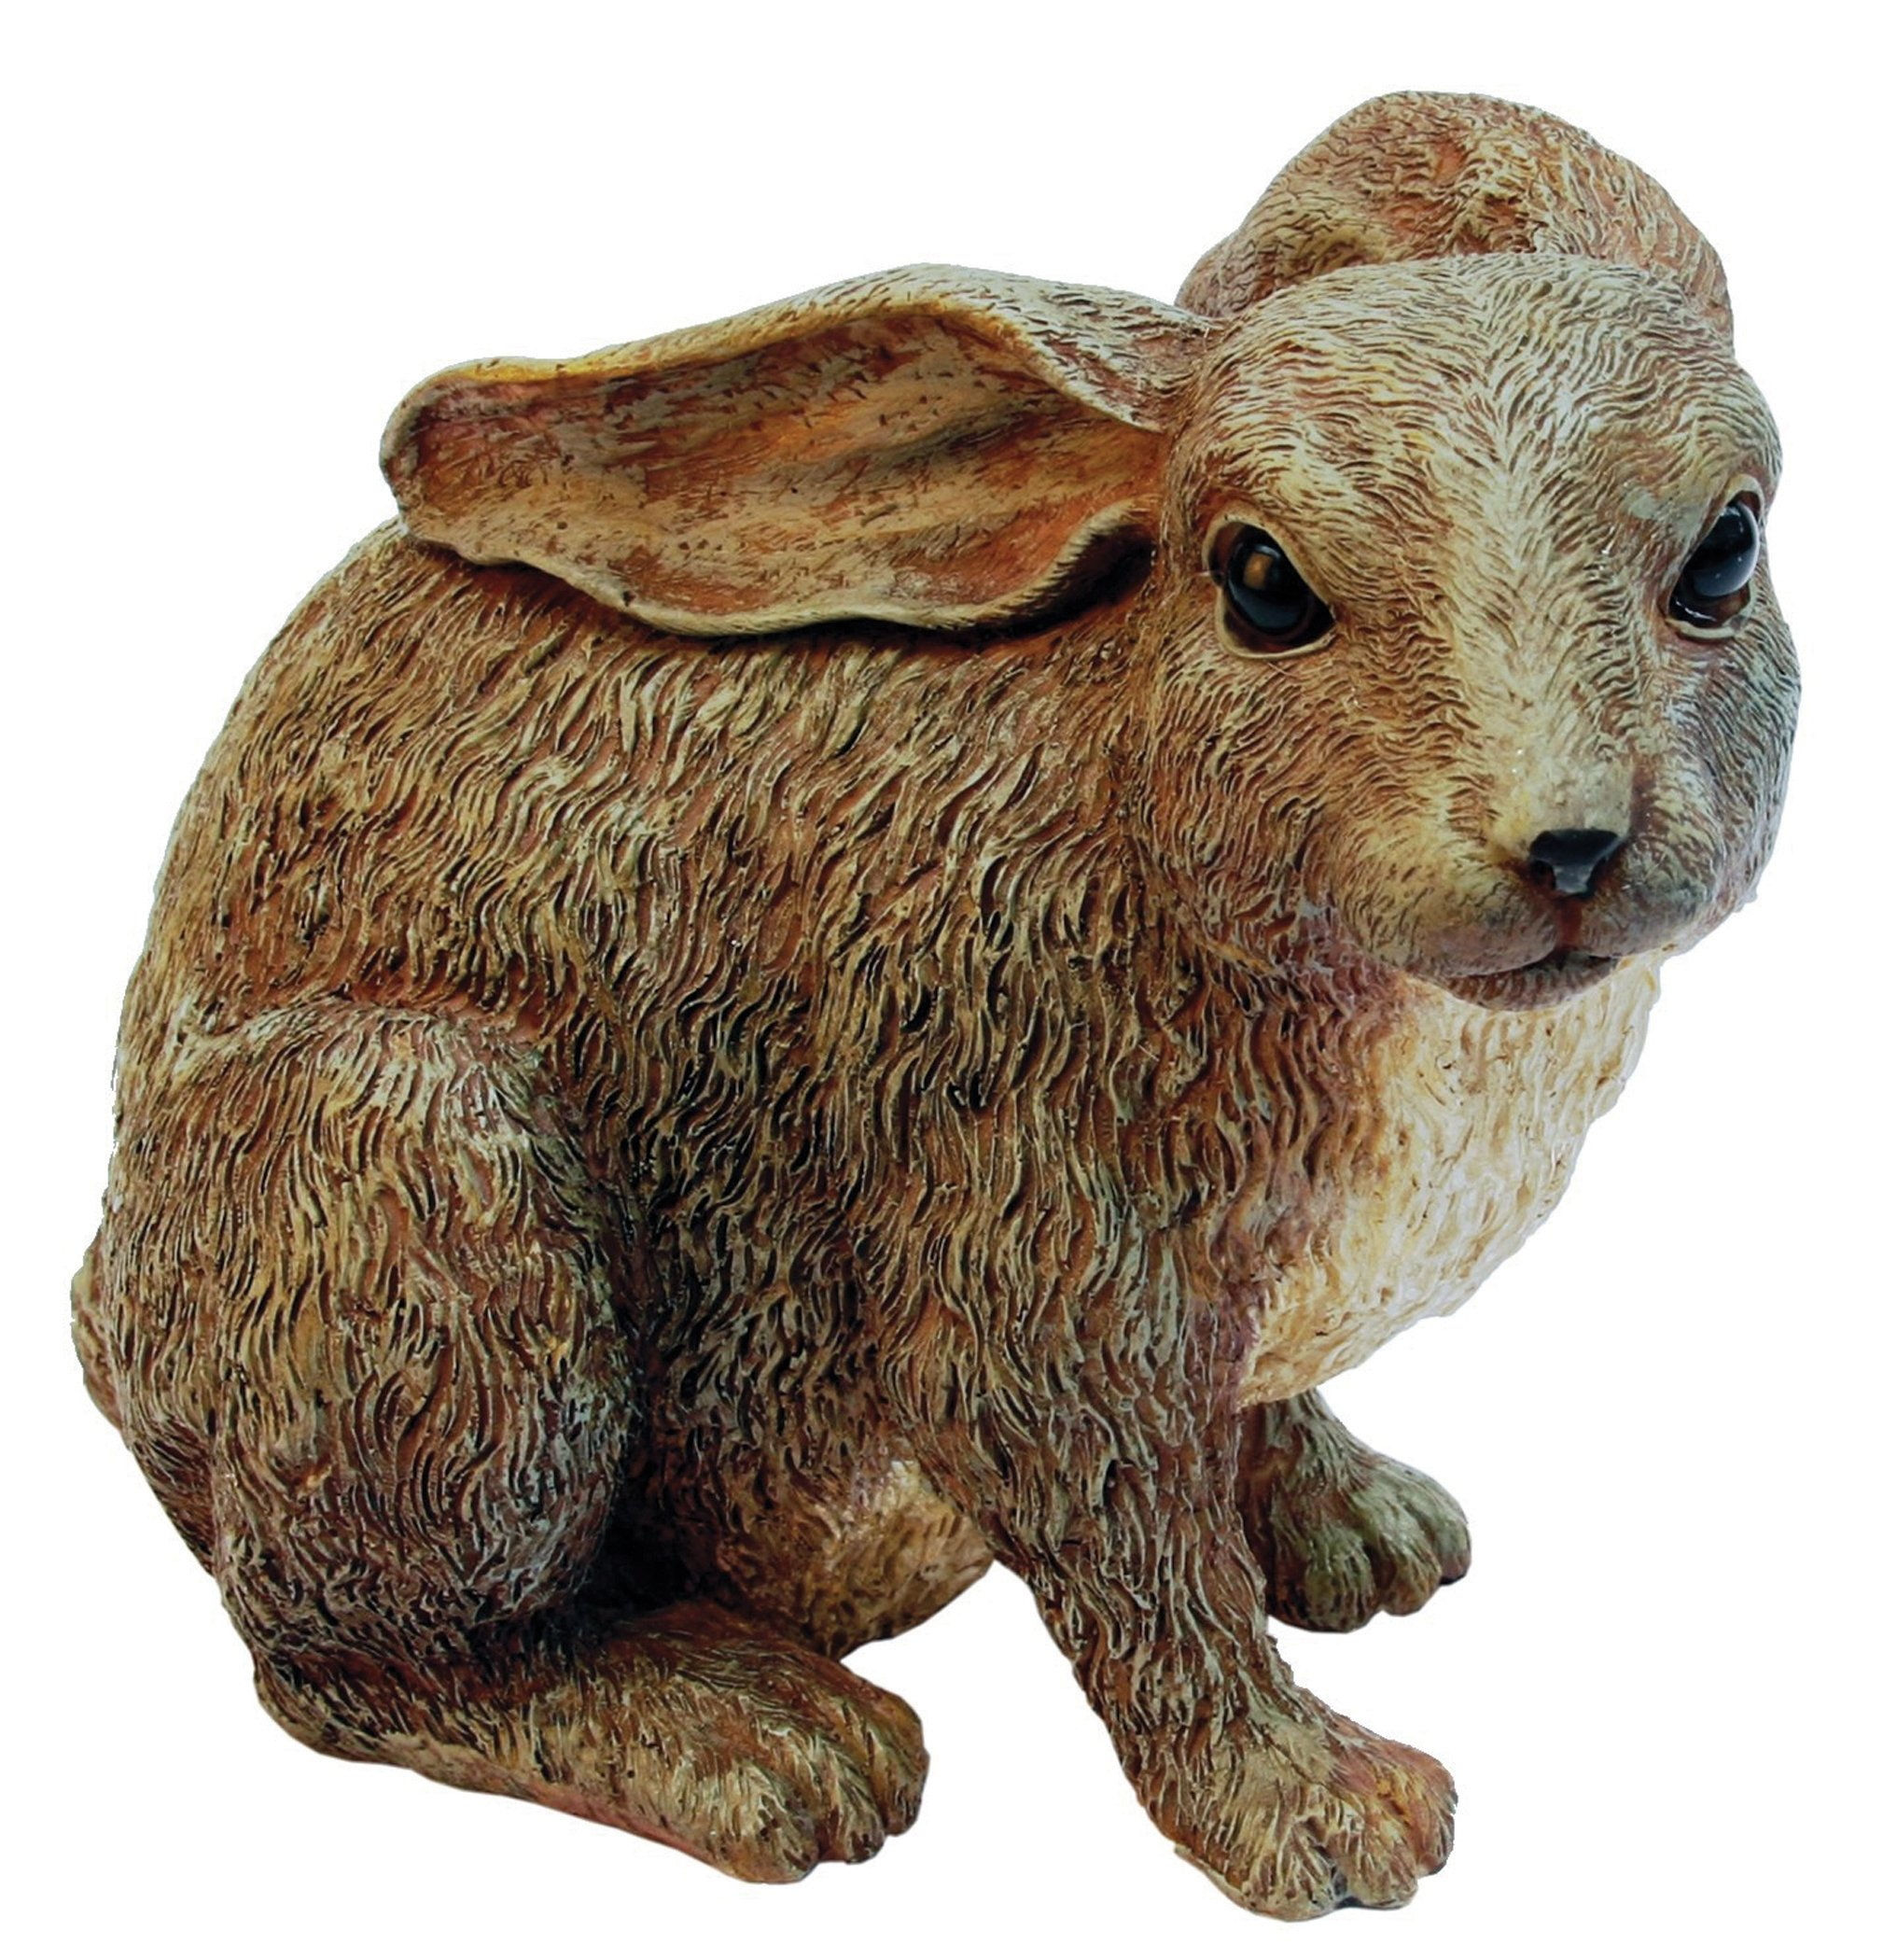 Junior Rabbit Brown Rabbit Family by Michael Carr Designs - Outdoor Rabbit Figurine for gardens, patios and lawns (507012BGY)